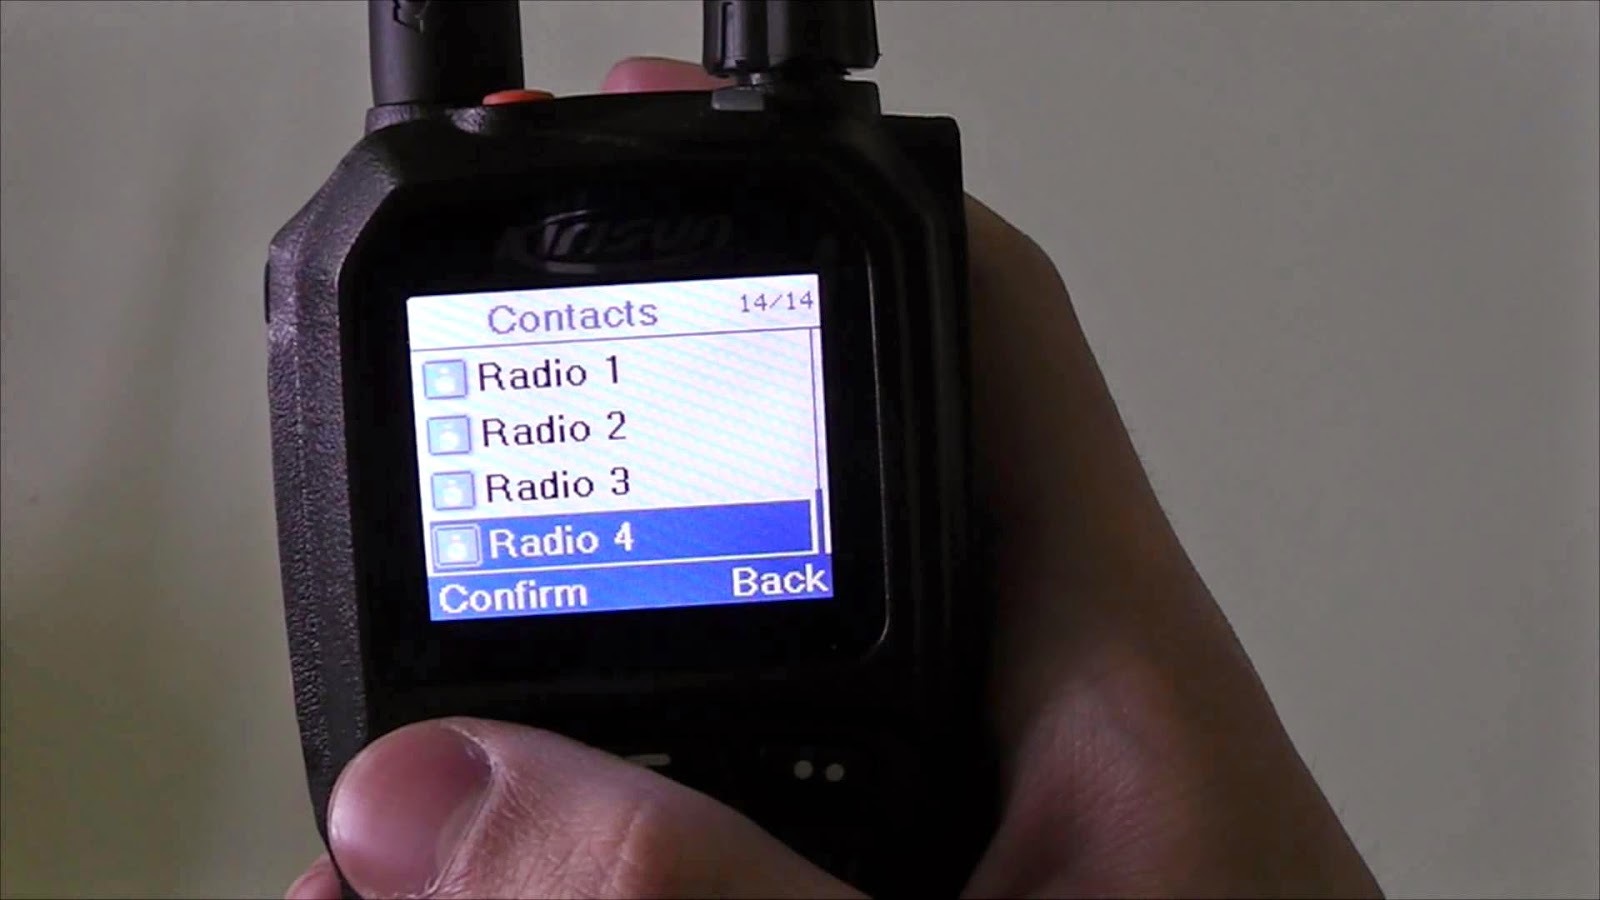 Picture of the Kirisun DP770 DMR radio